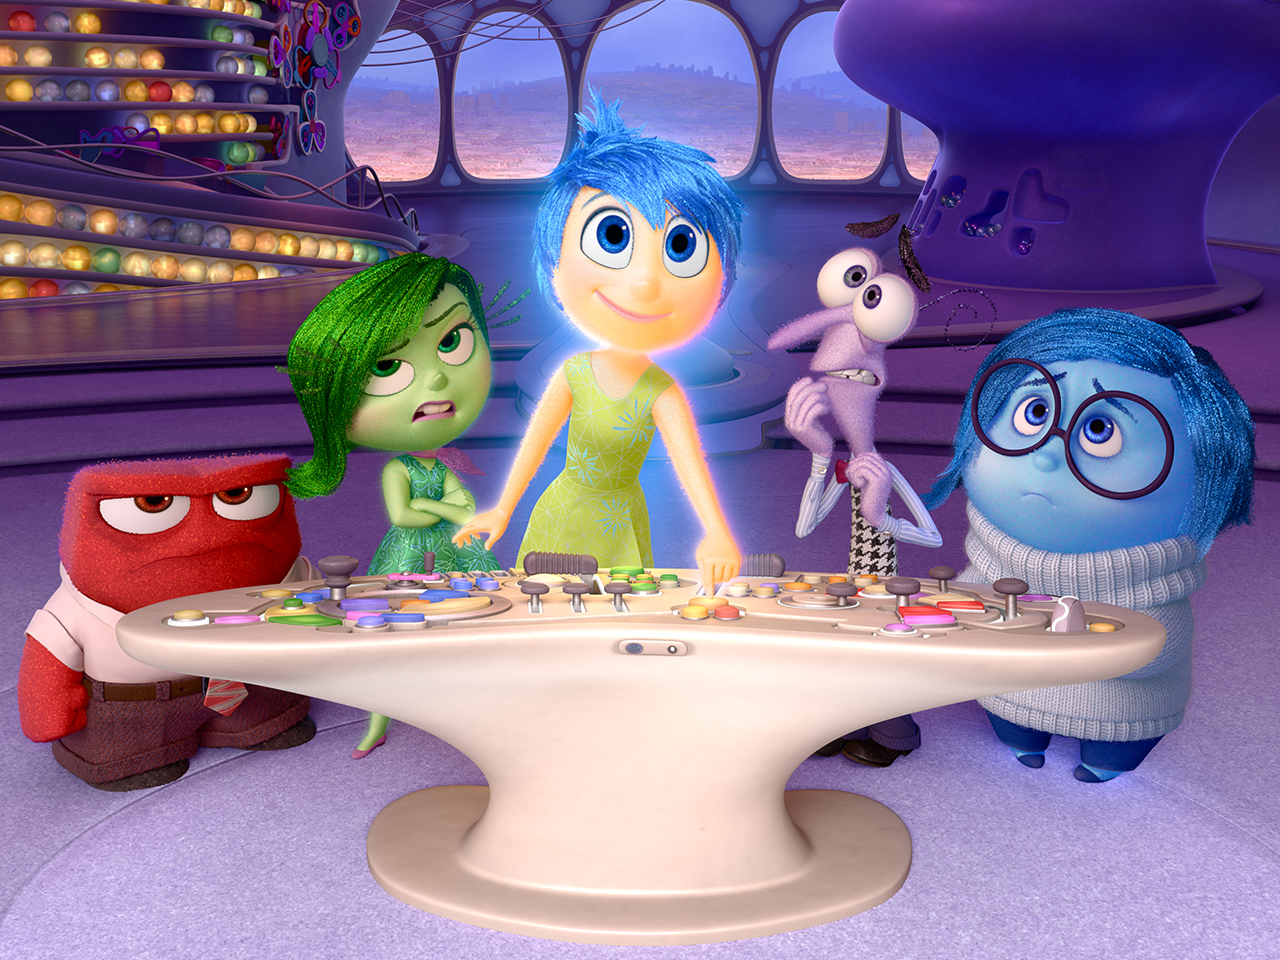 A still from the animated kids' movie Inside Out